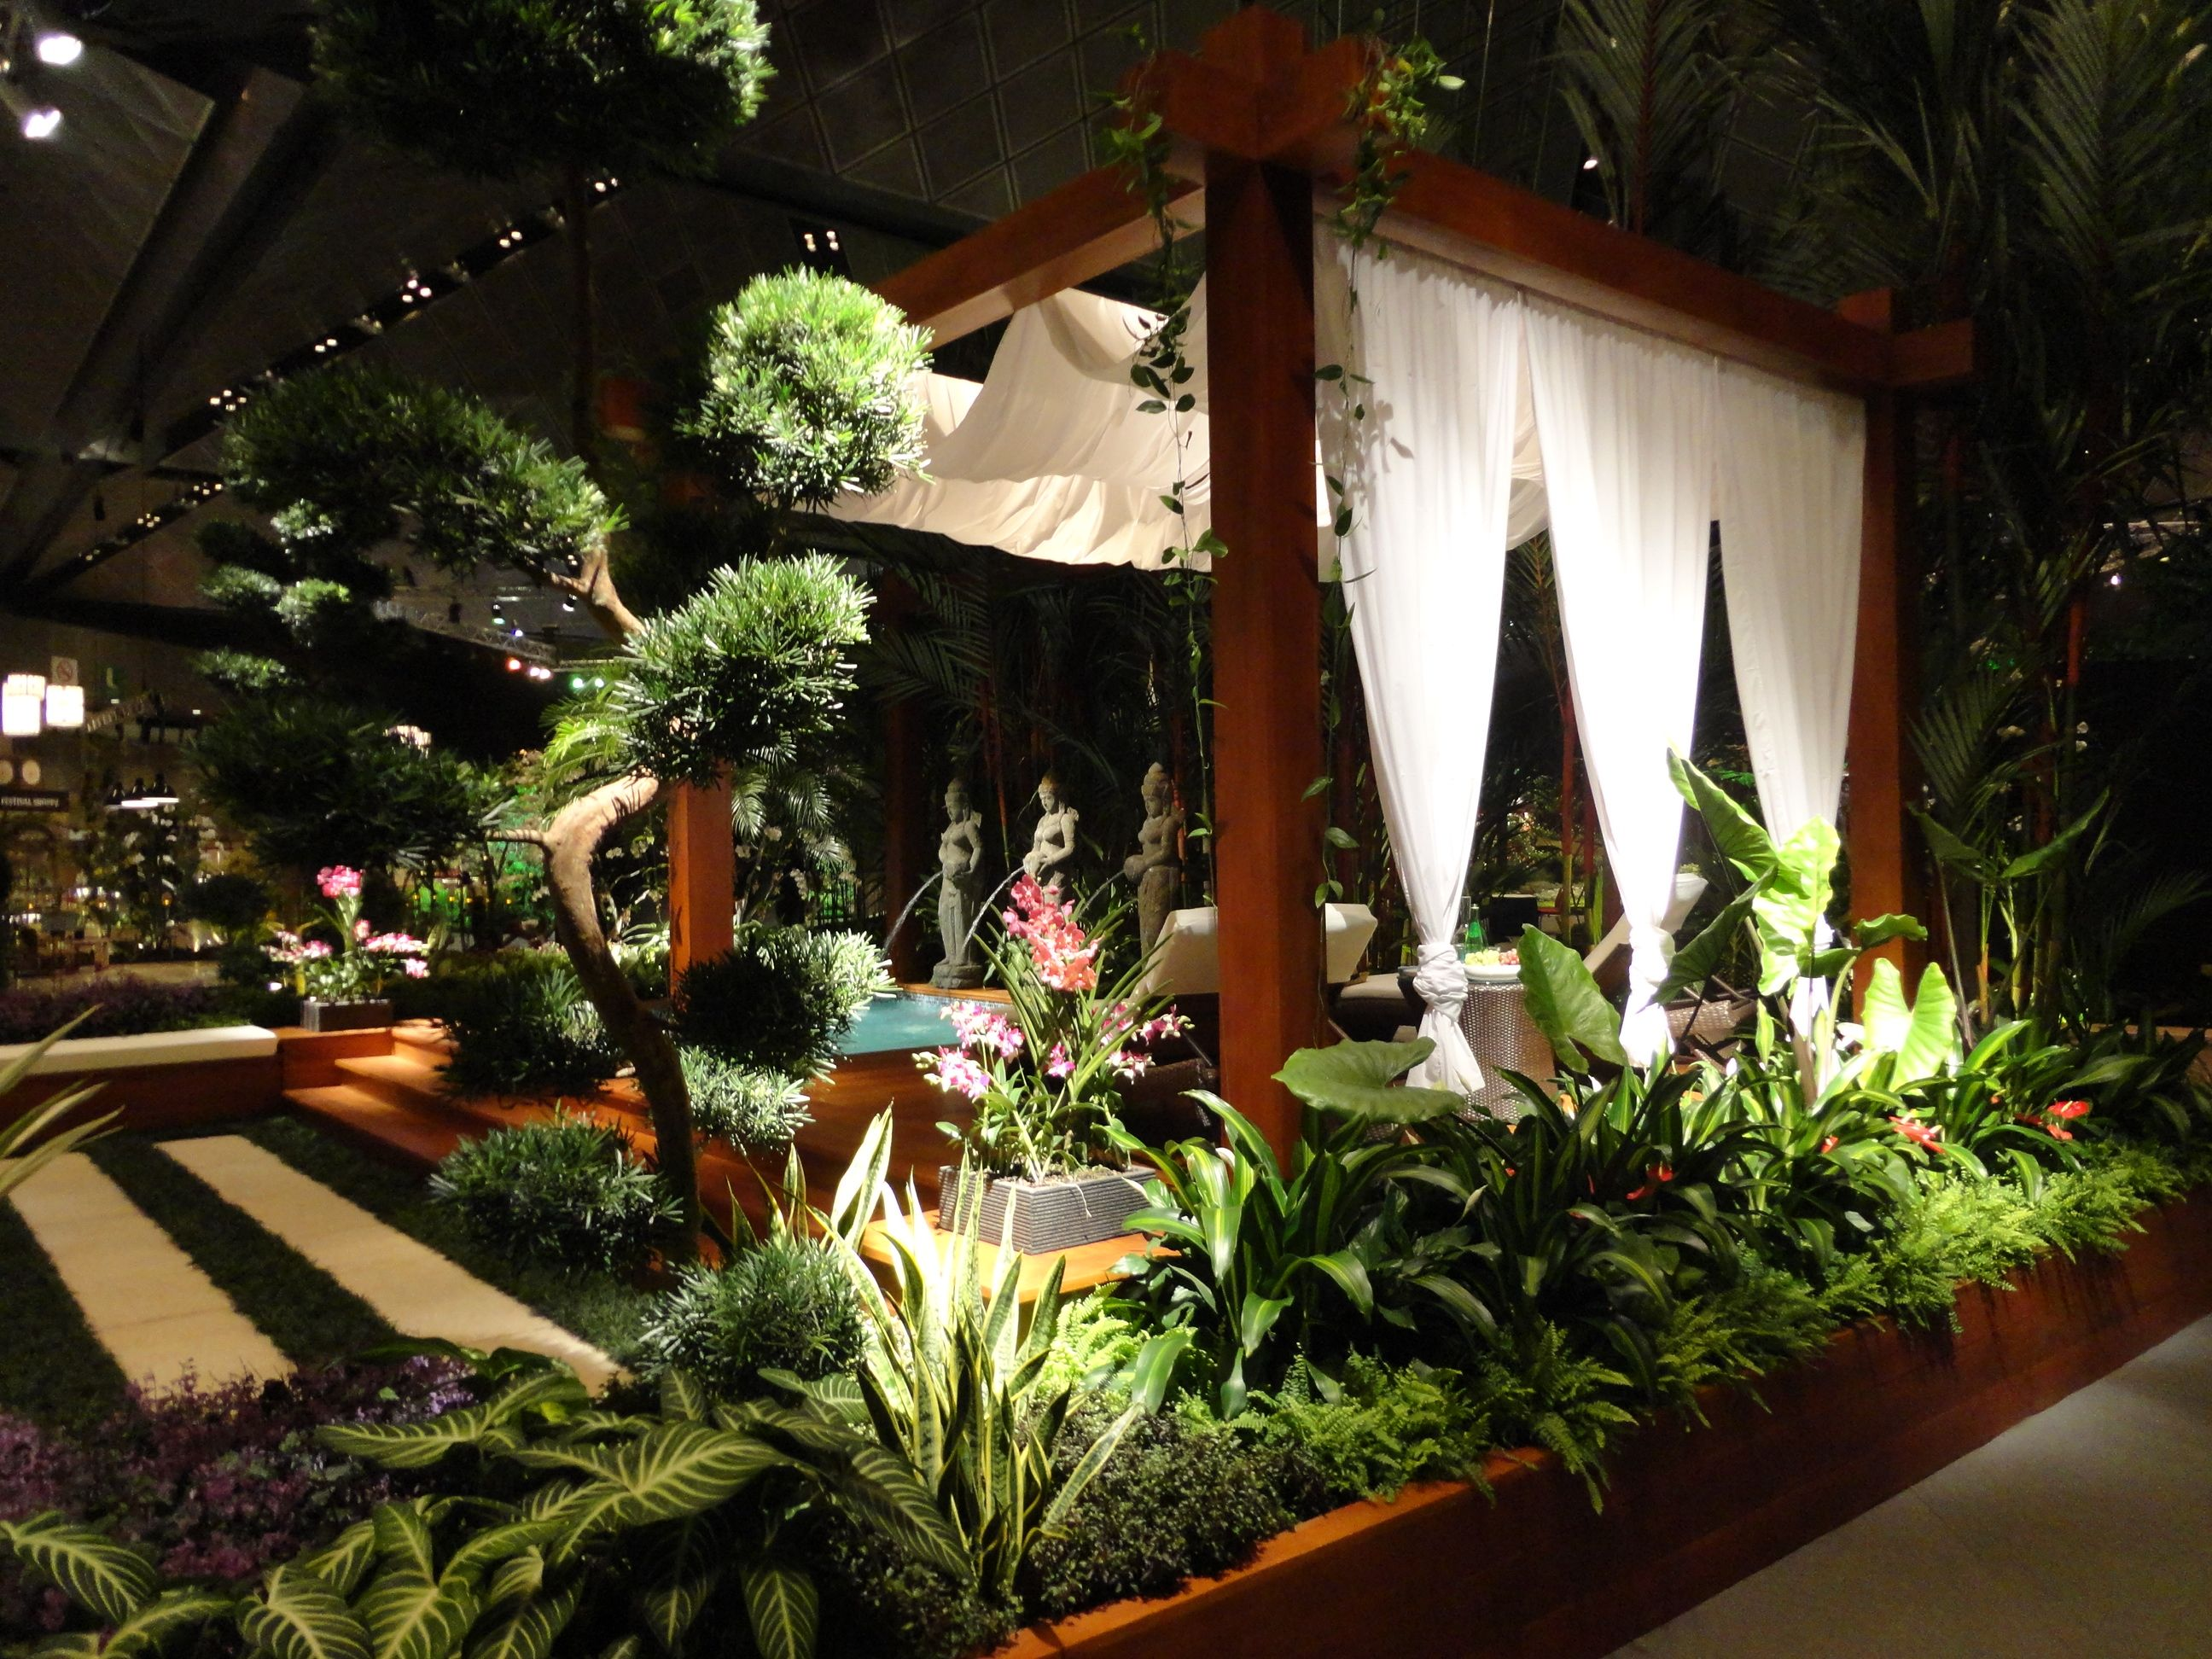 Local Landscape Designer Wins at Singapore Garden Festival ...